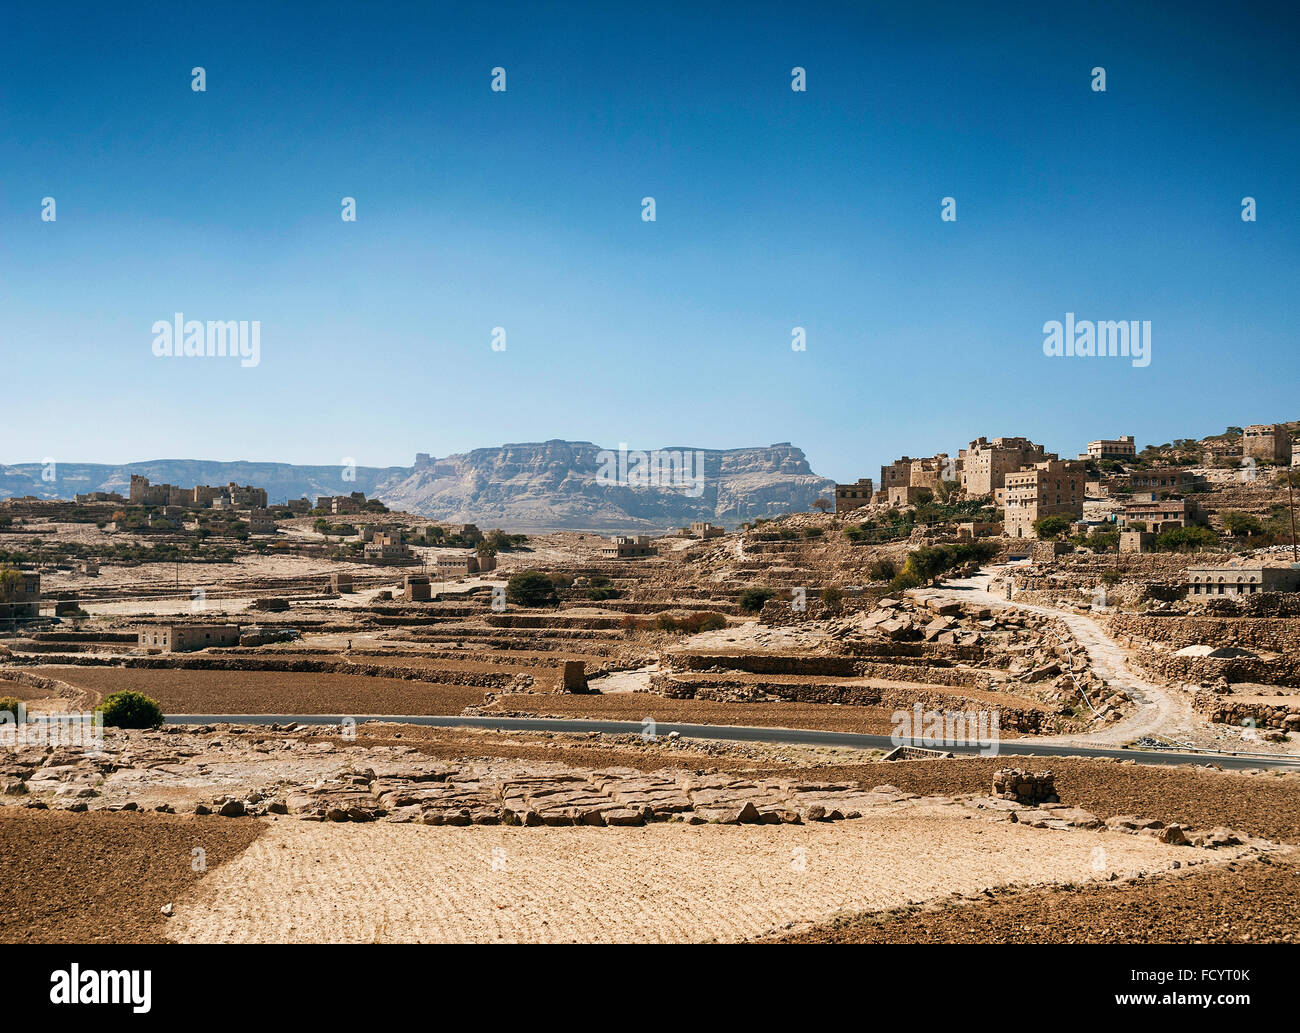 countryside landscape and villages north of sanaa in rural yemen - Stock Image